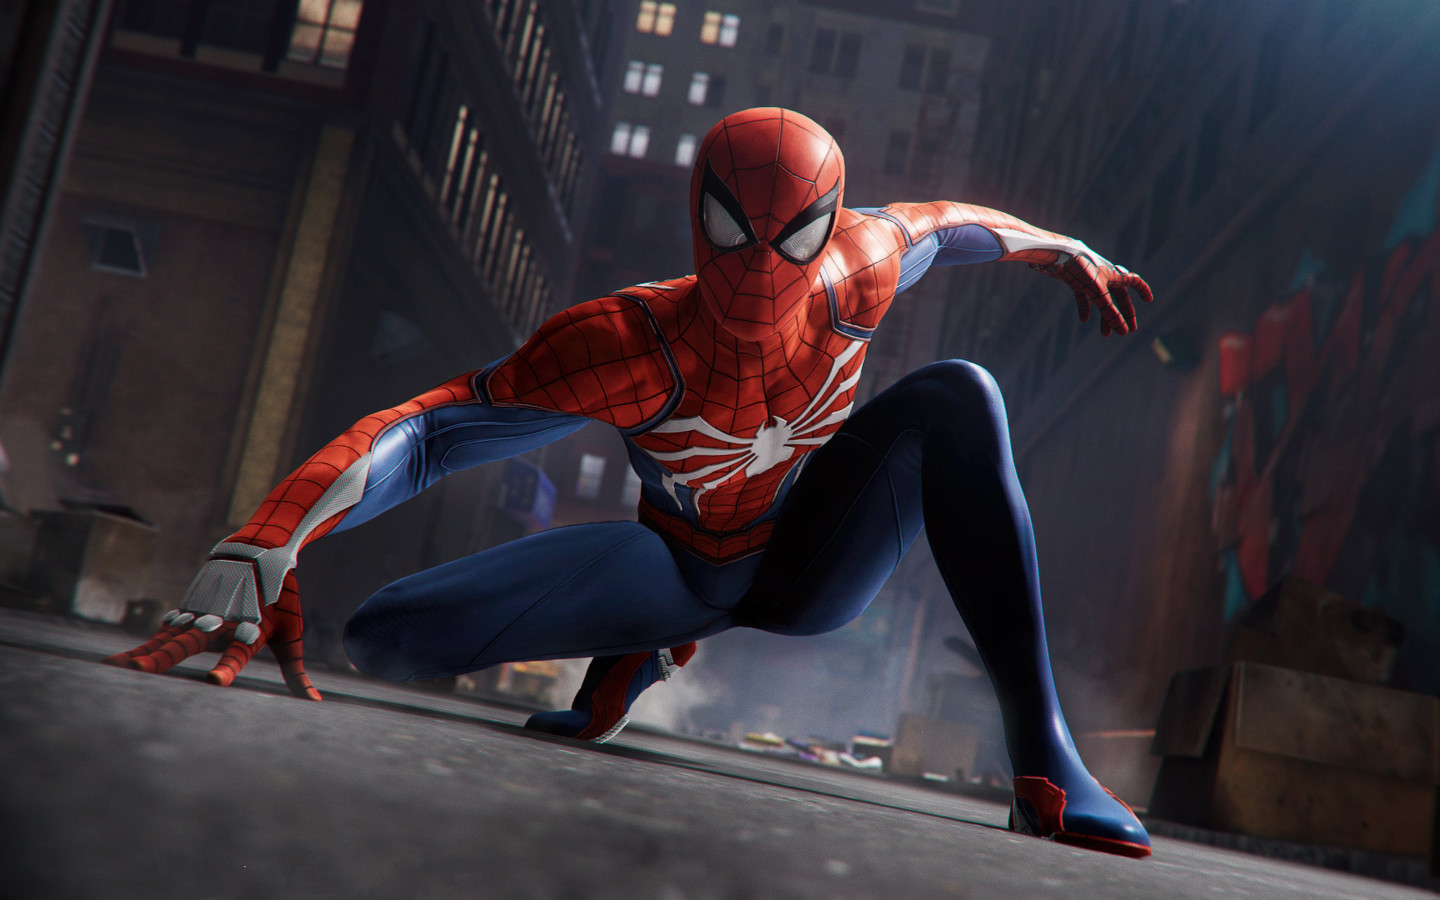 Game Of Spider Man Hd Wallpaper: Spider Man 2018 Game, HD 4K Wallpaper